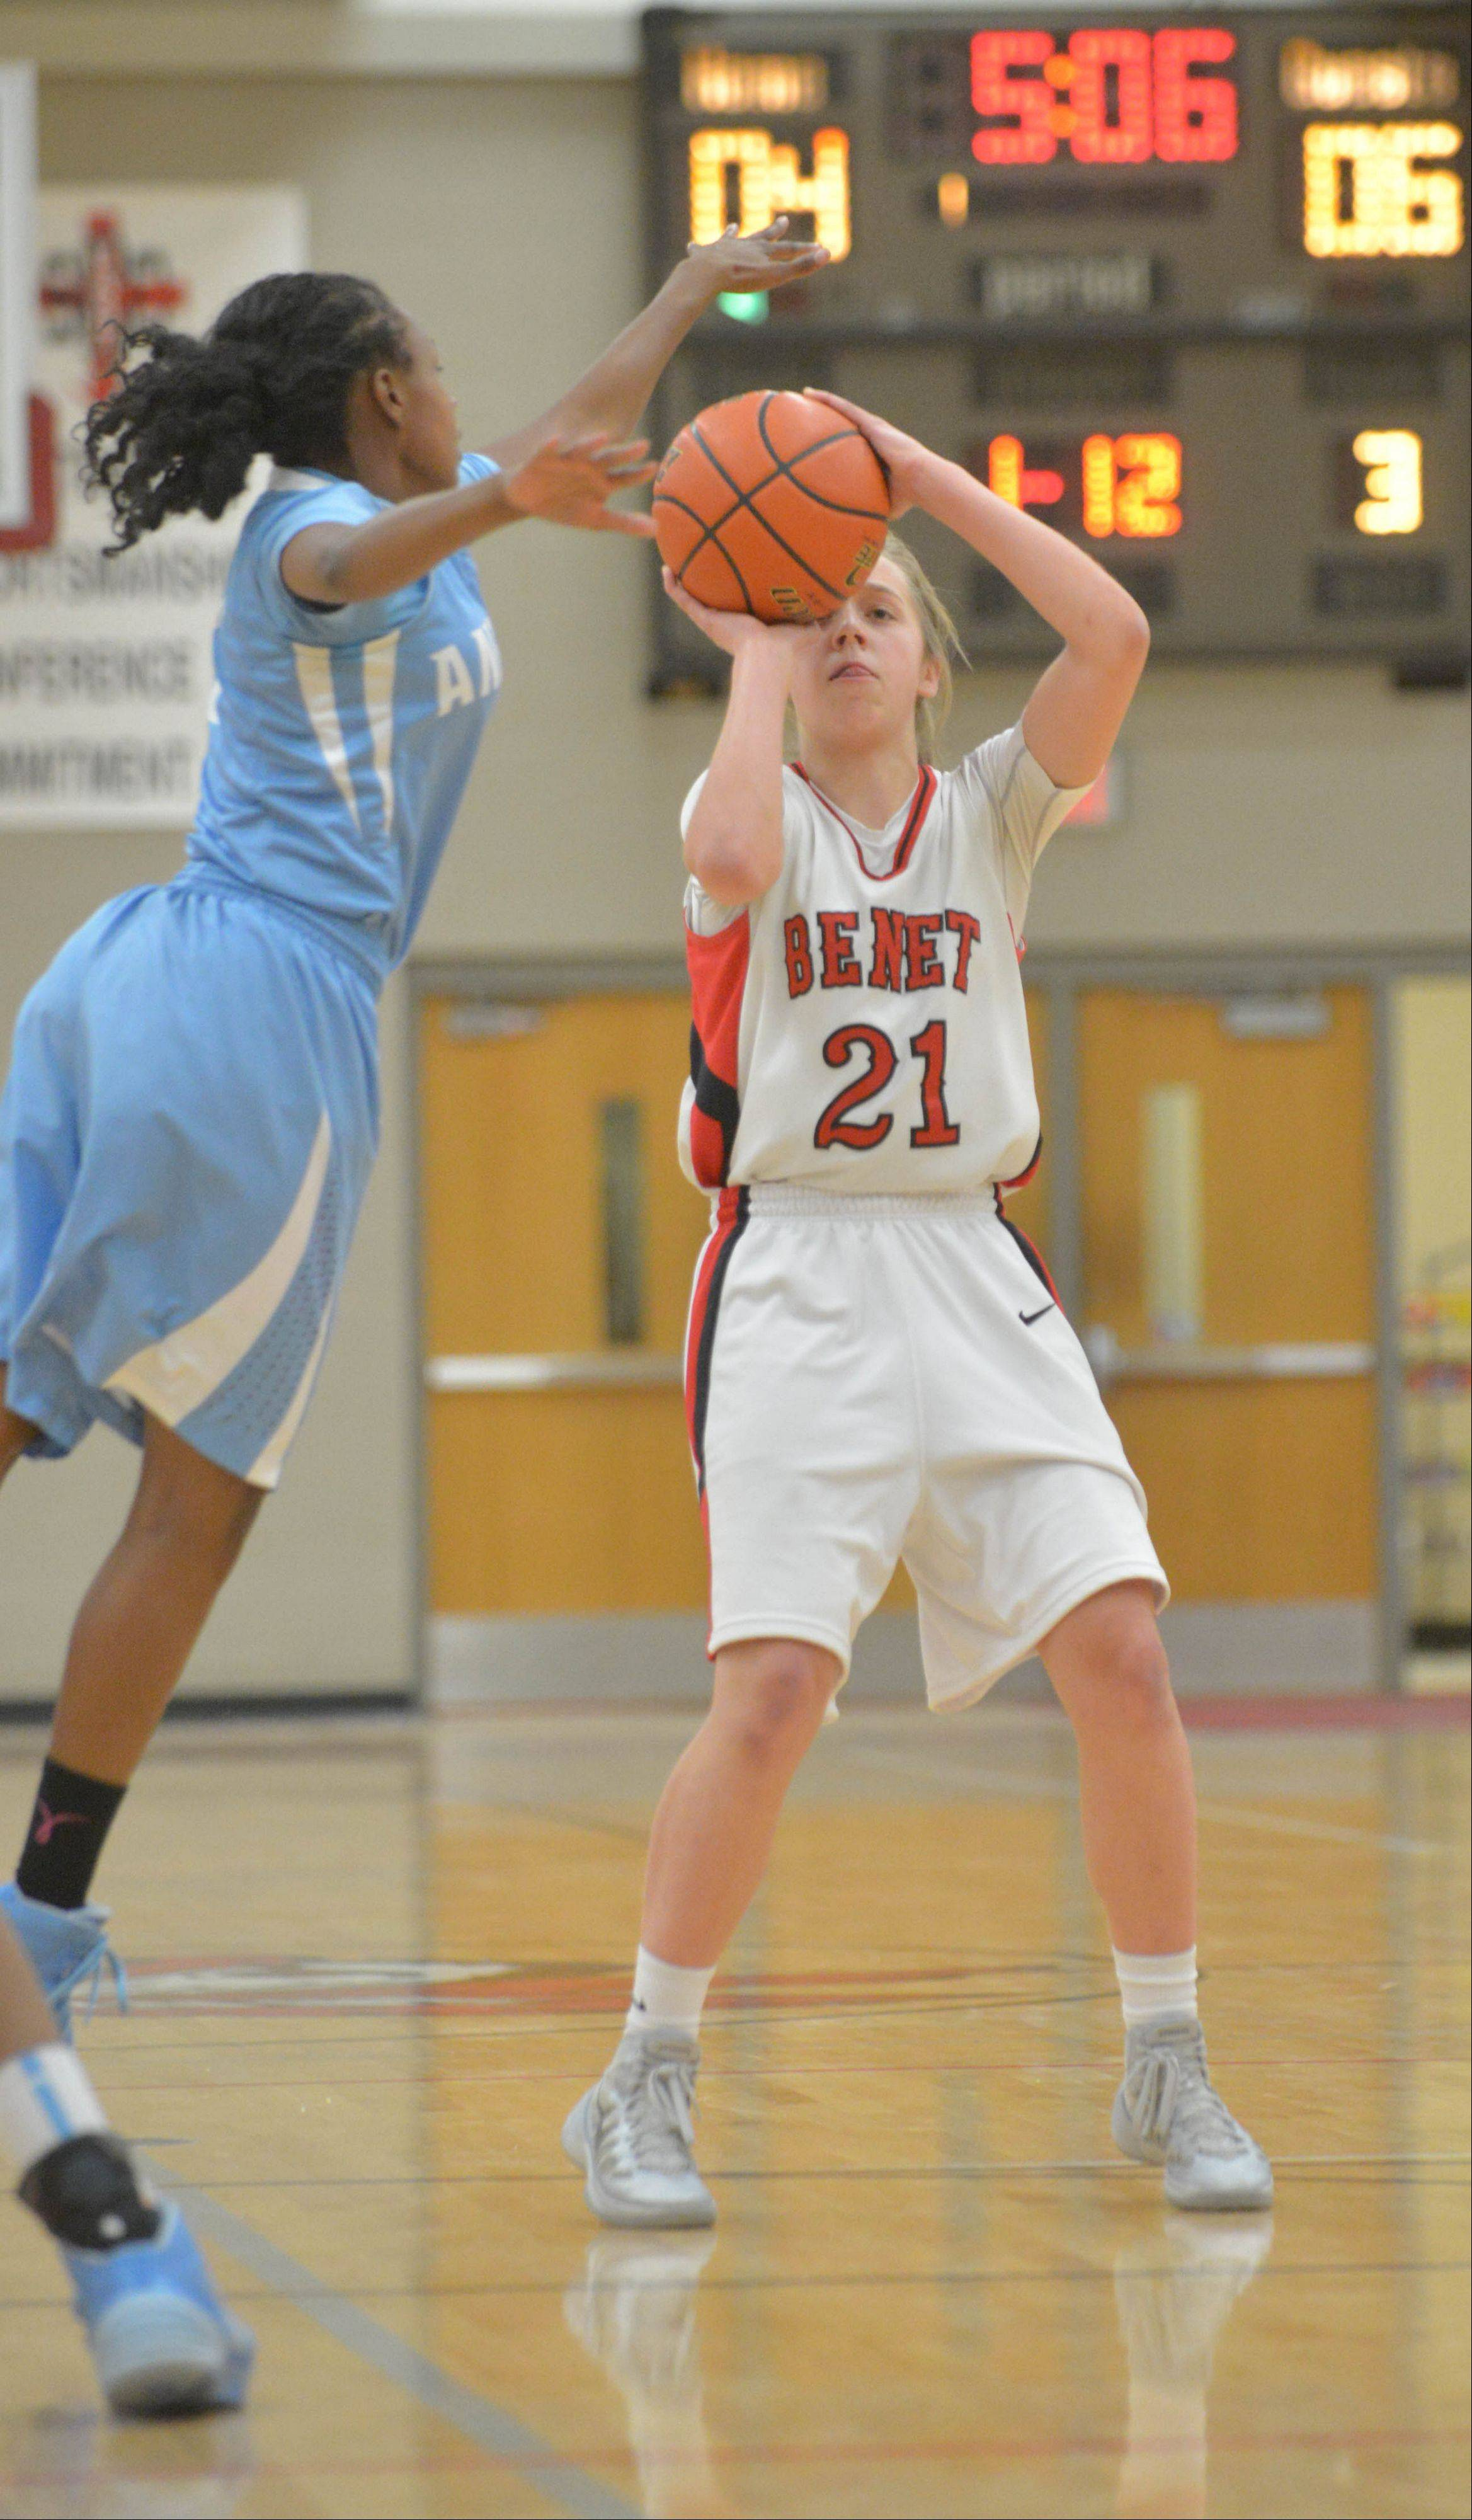 Kathleen Doyle of Benet takes a shot during the Joliet Catholic at Benet girls basketball game Wednesday.